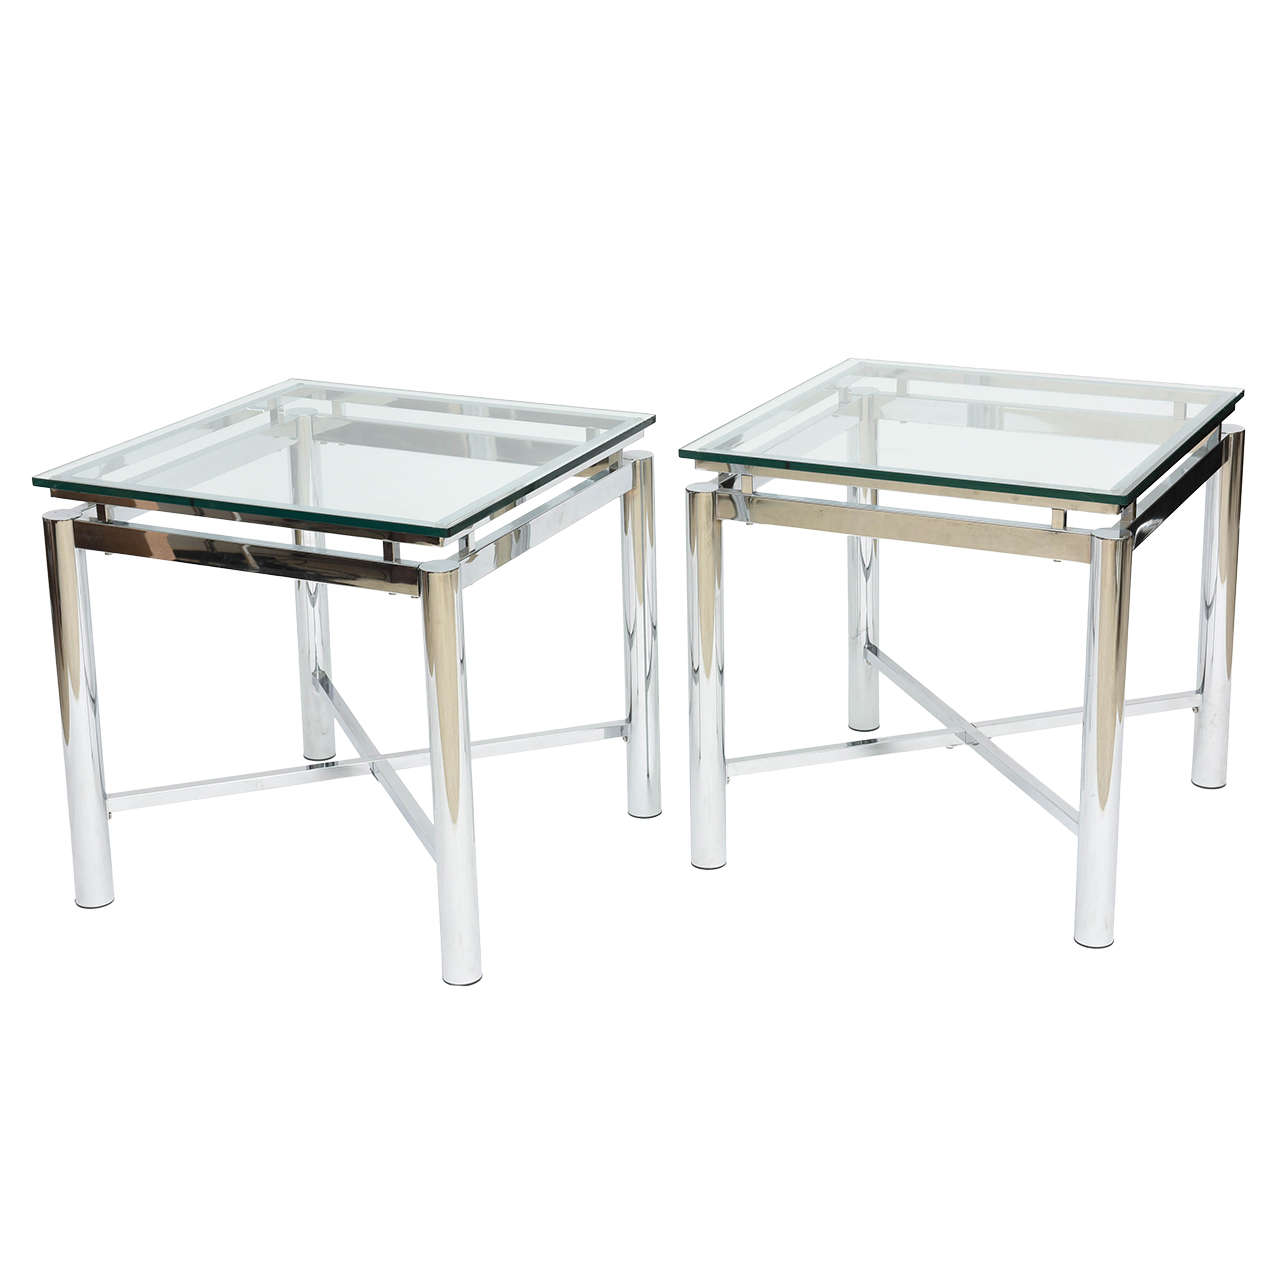 Pair of American Modern Chrome and Glass Tables, DIA